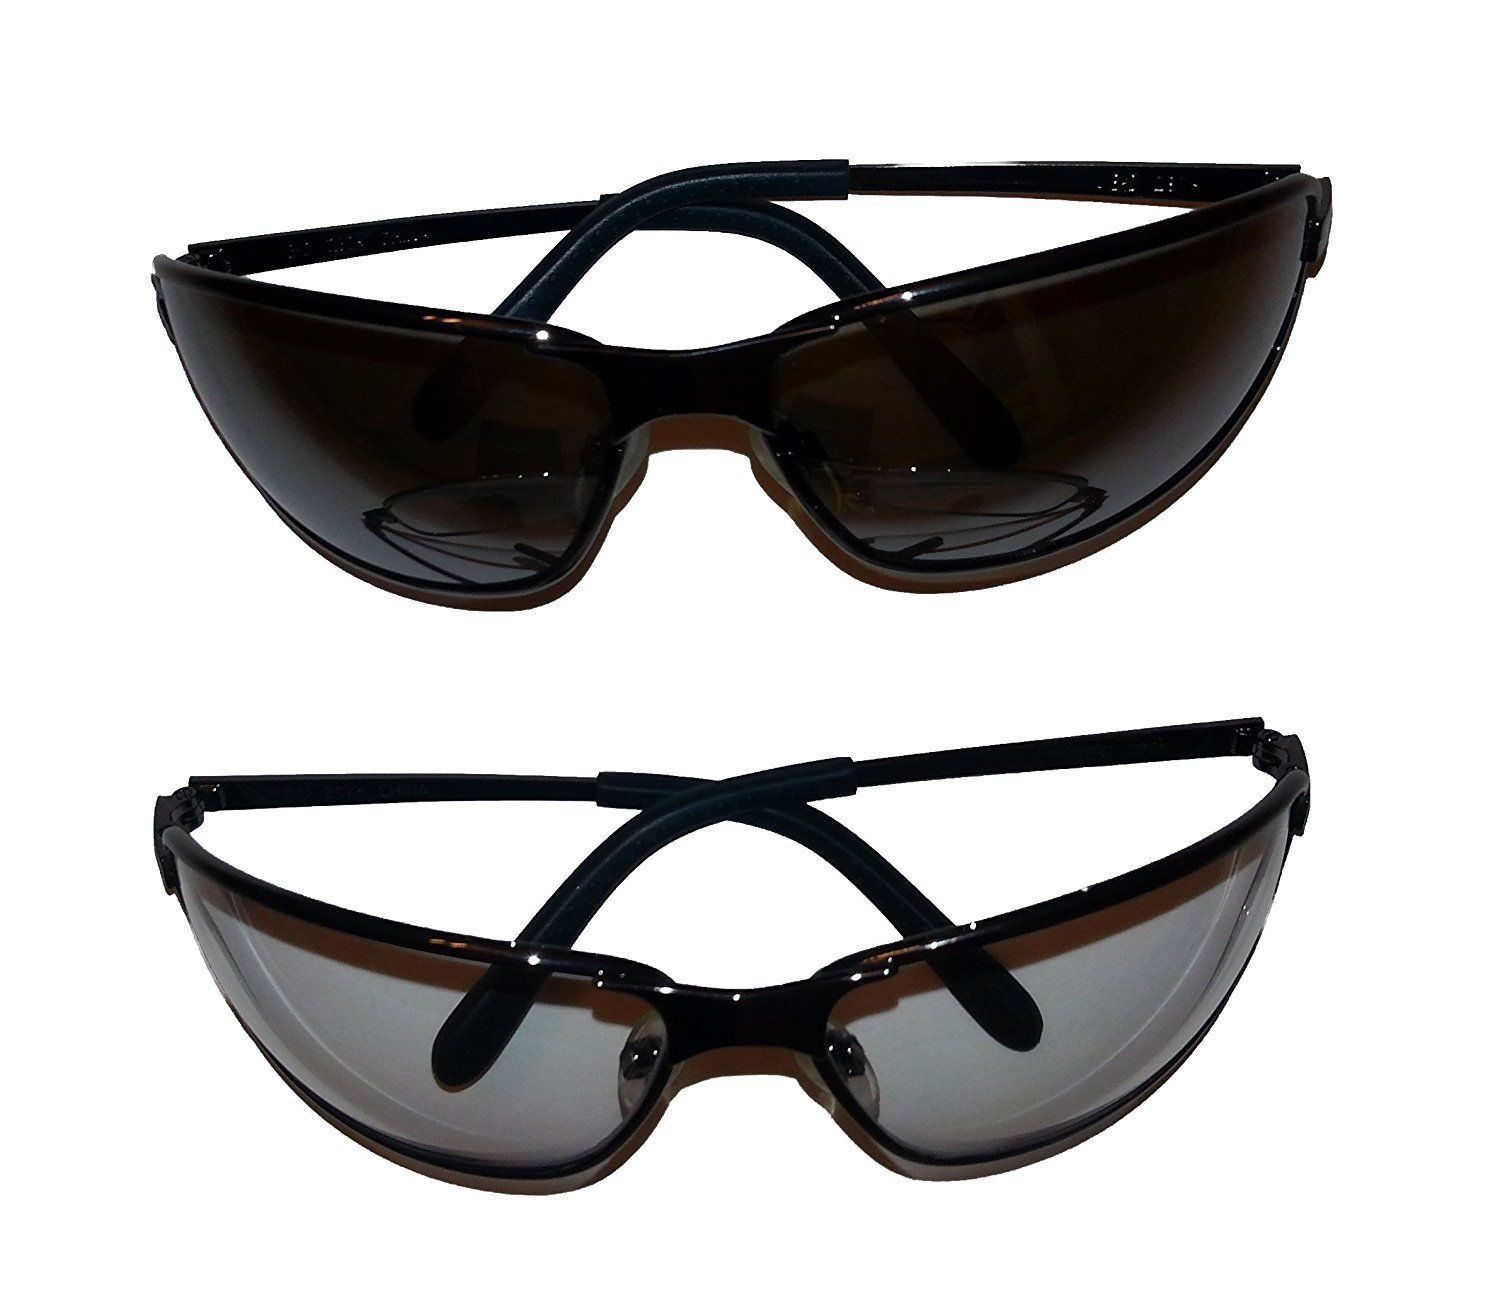 Milwaukee Safety Glasses 2 Piece Bundle Glasses, Goggles